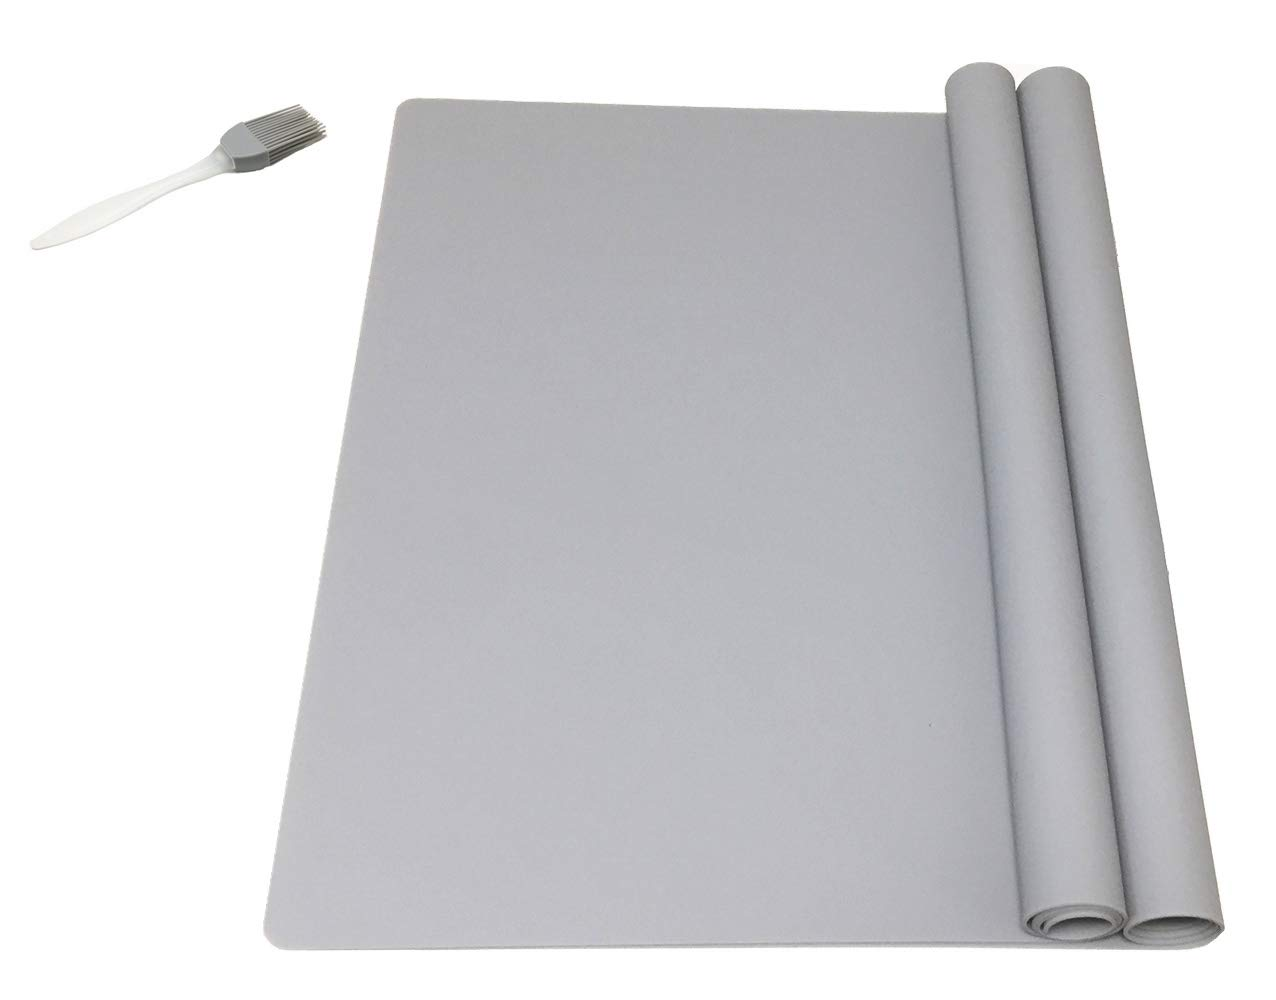 EPHome 2Pack Extra Large Multipurpose Silicone Nonstick Pastry Mat, Heat Resistant Nonskid Counter Mat, Table Mat, 23.6''15.75'' (Gray) by EPHome